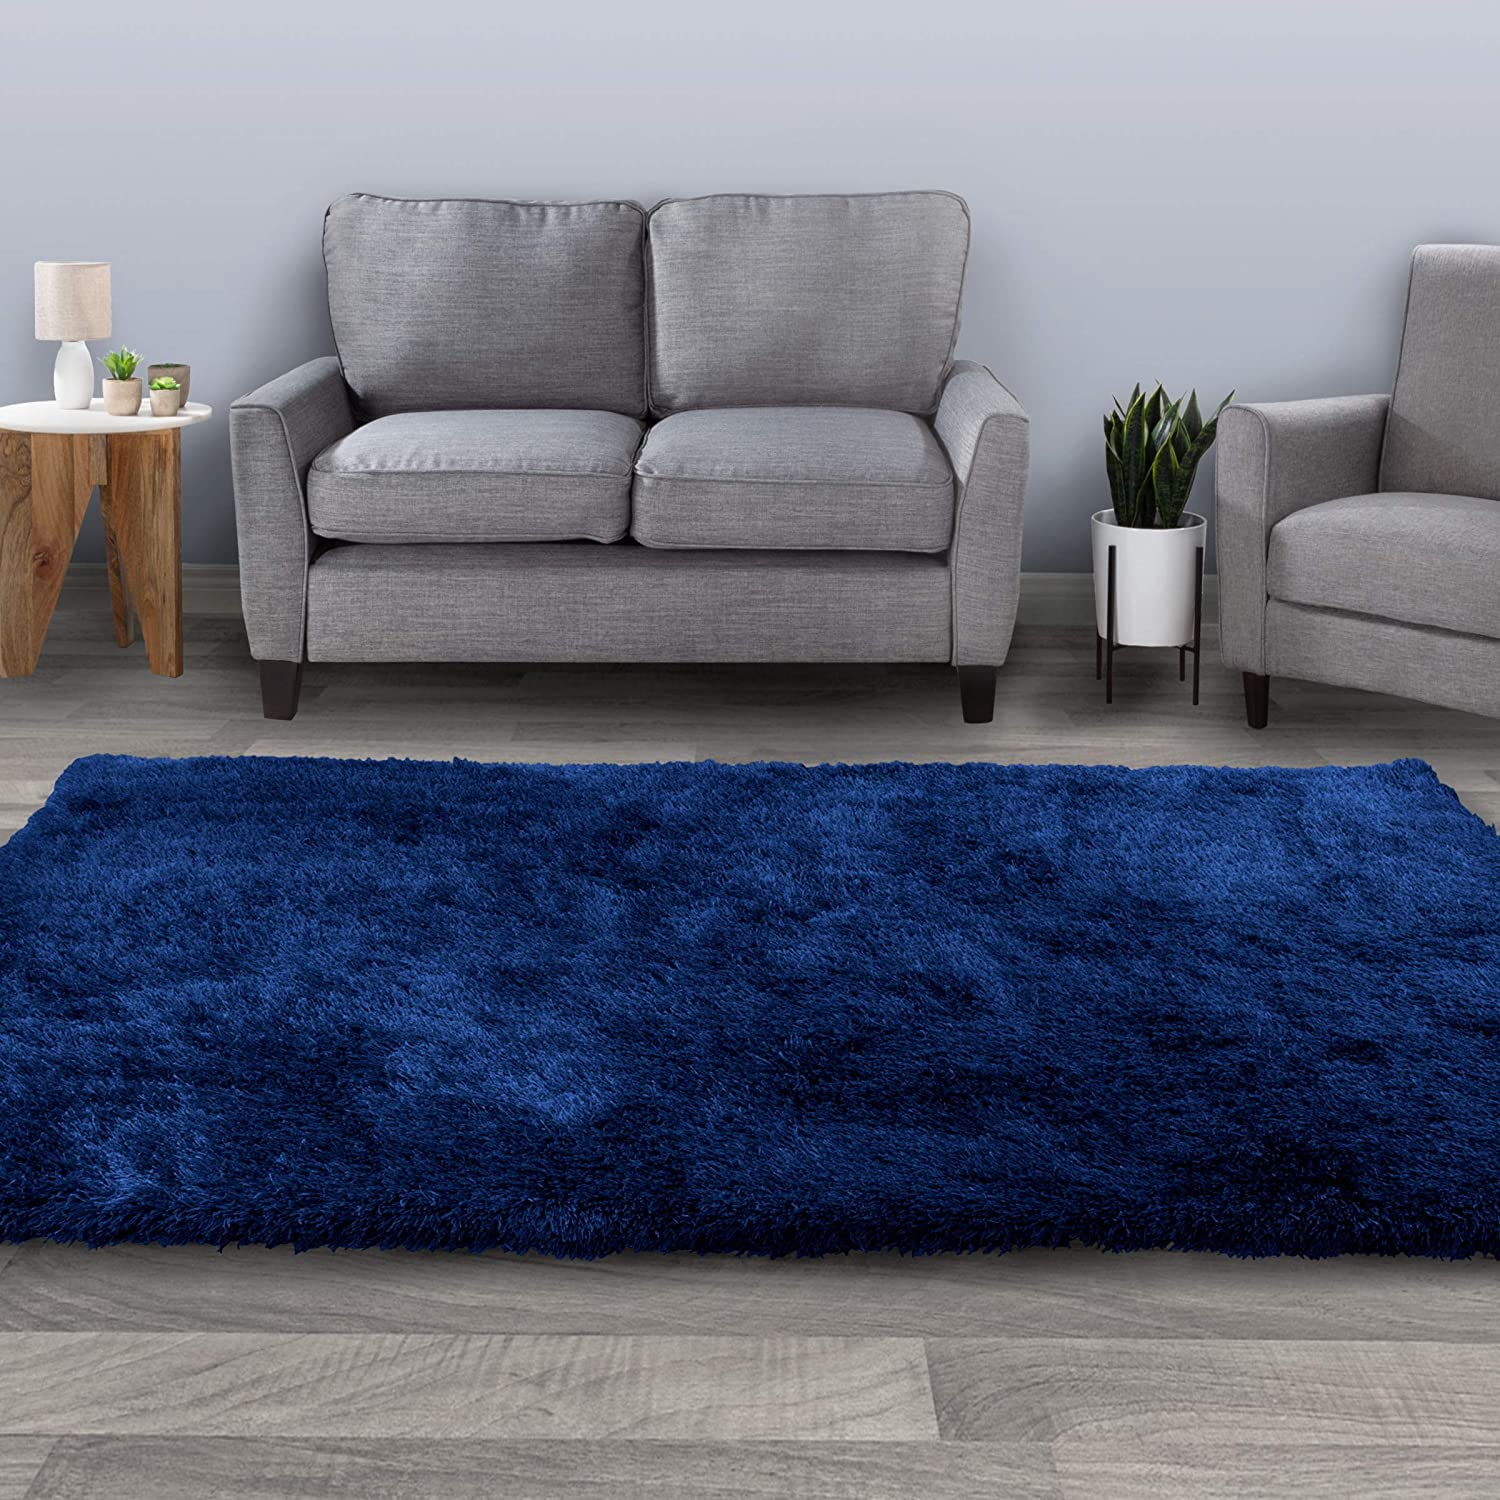 Bedford Home Shag Area Rug-8x10 Plush Throw Carpet-Cozy Modern Design-Solid Color Floor Covering for Home, Living Room, Bedroom & Office, 8'x10', Navy Blue